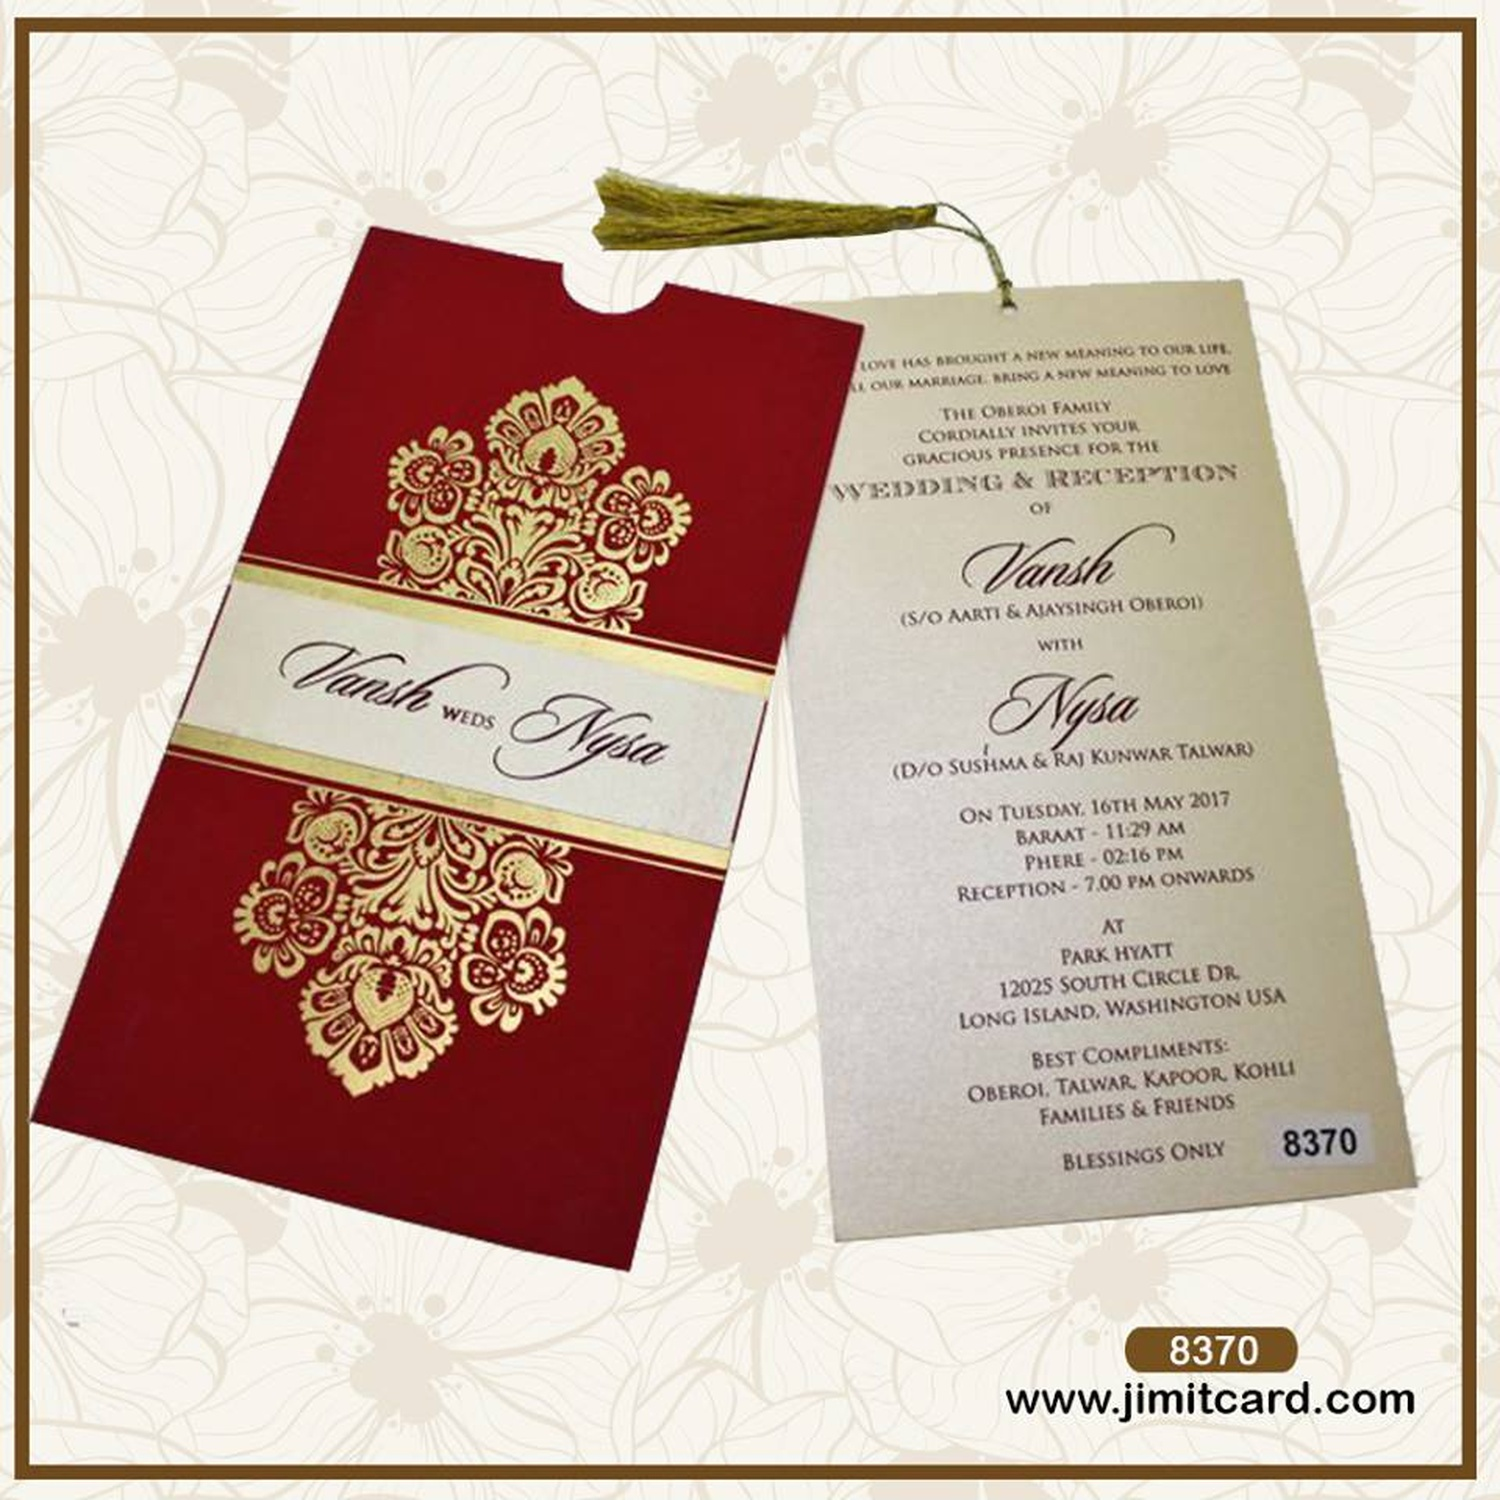 Jimit Card, Wedding Invitation Card in Dadar West, Mumbai | WeddingZ